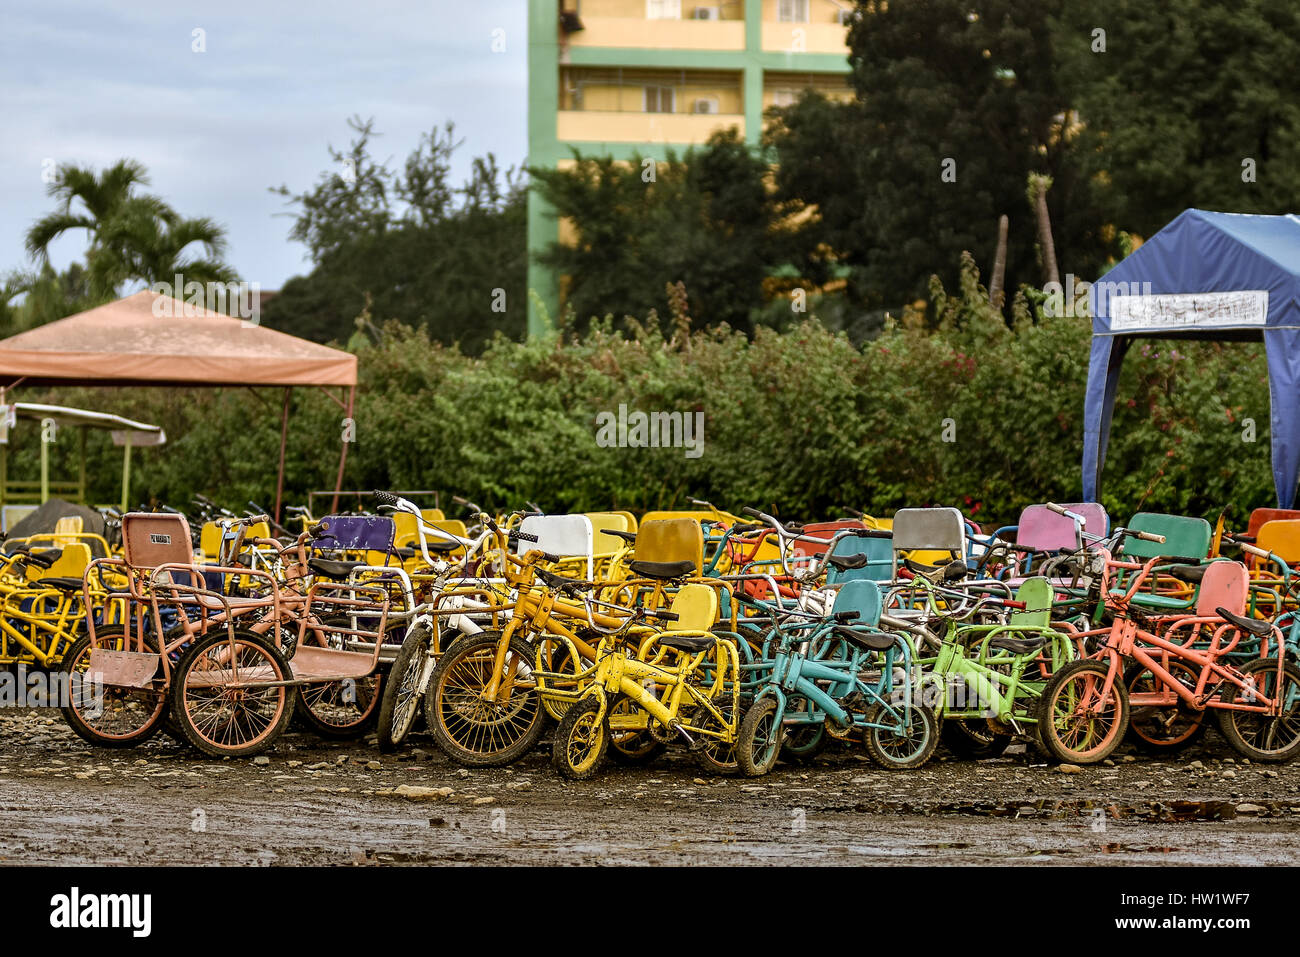 Tricycles Stock Photos & Tricycles Stock Images - Alamy